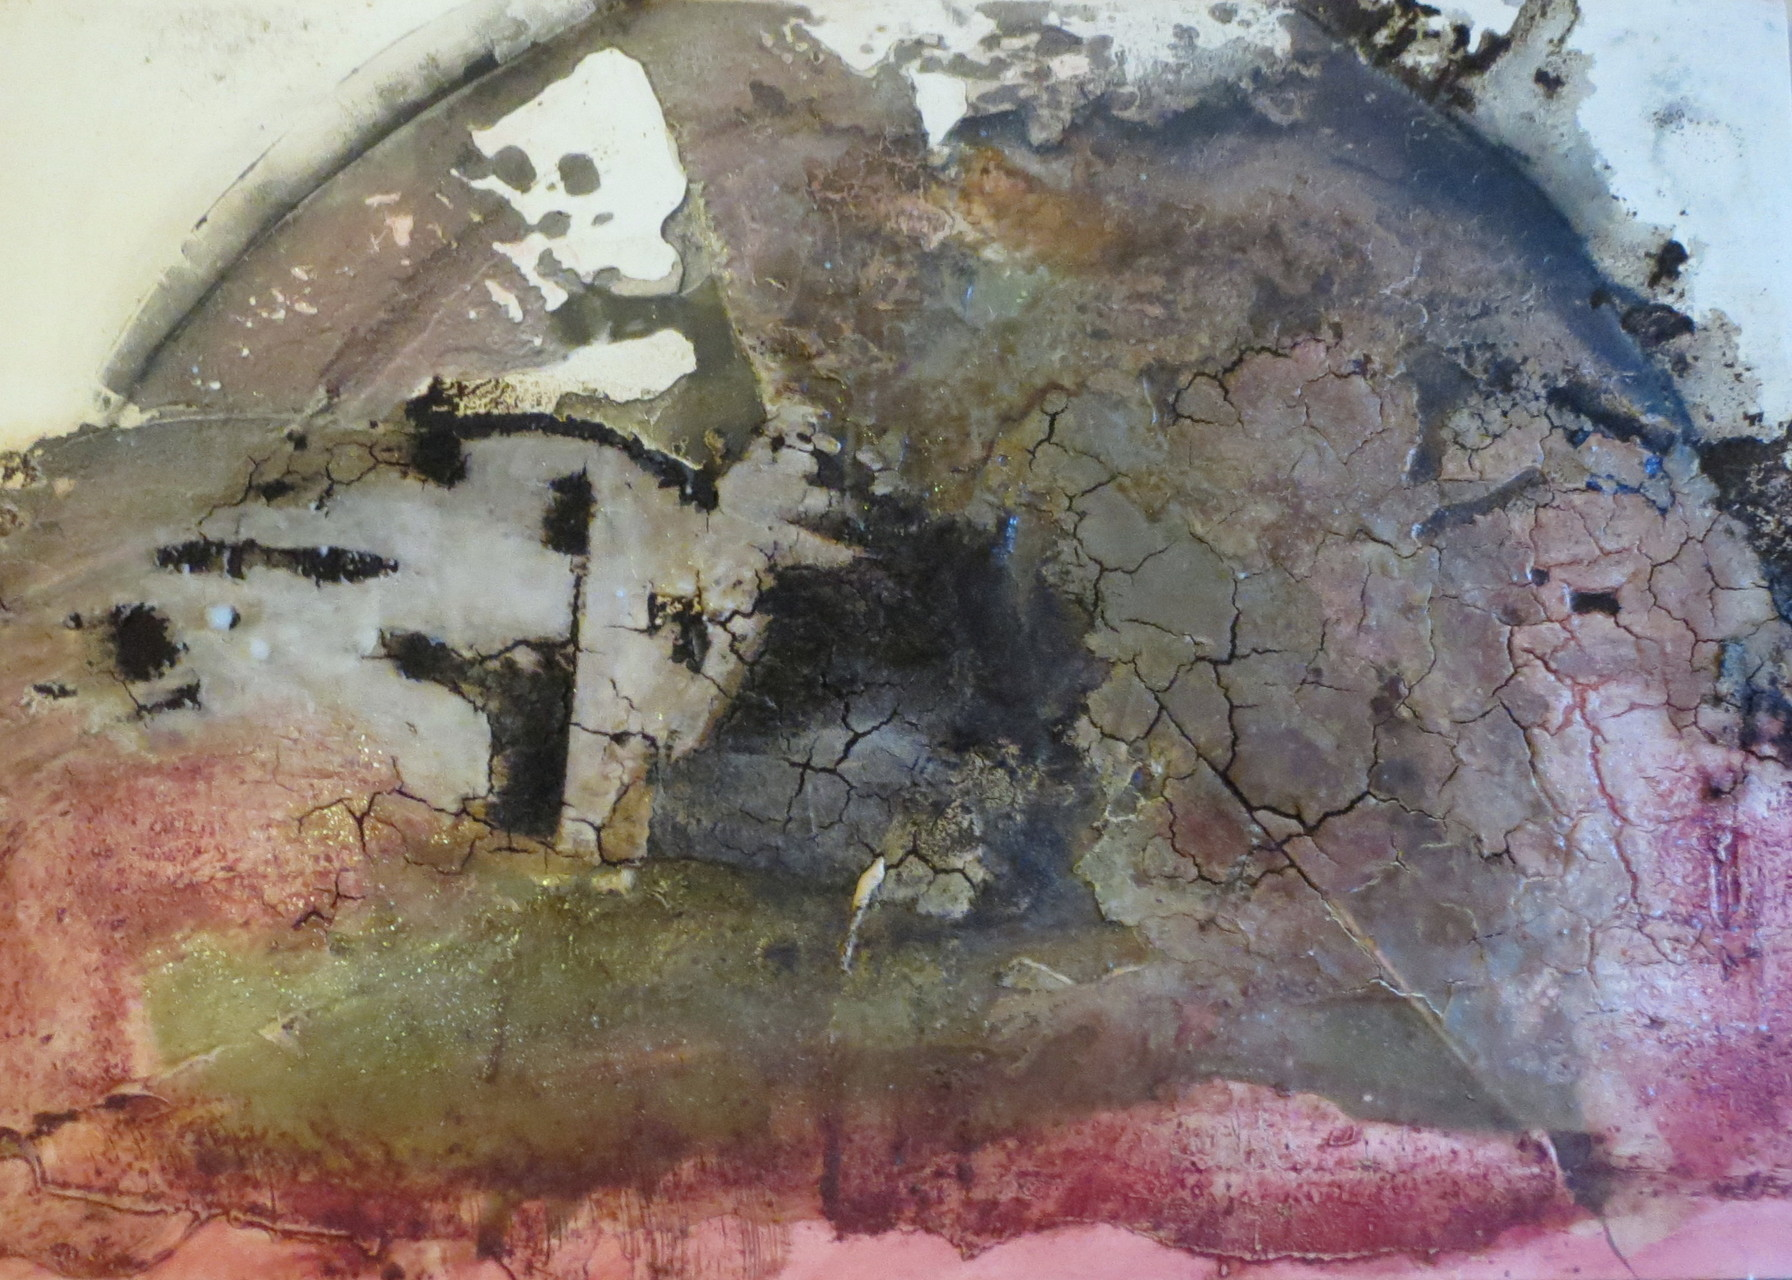 Blick aus dem All, 70cm x 1m x 4,5cm, Mixed Media